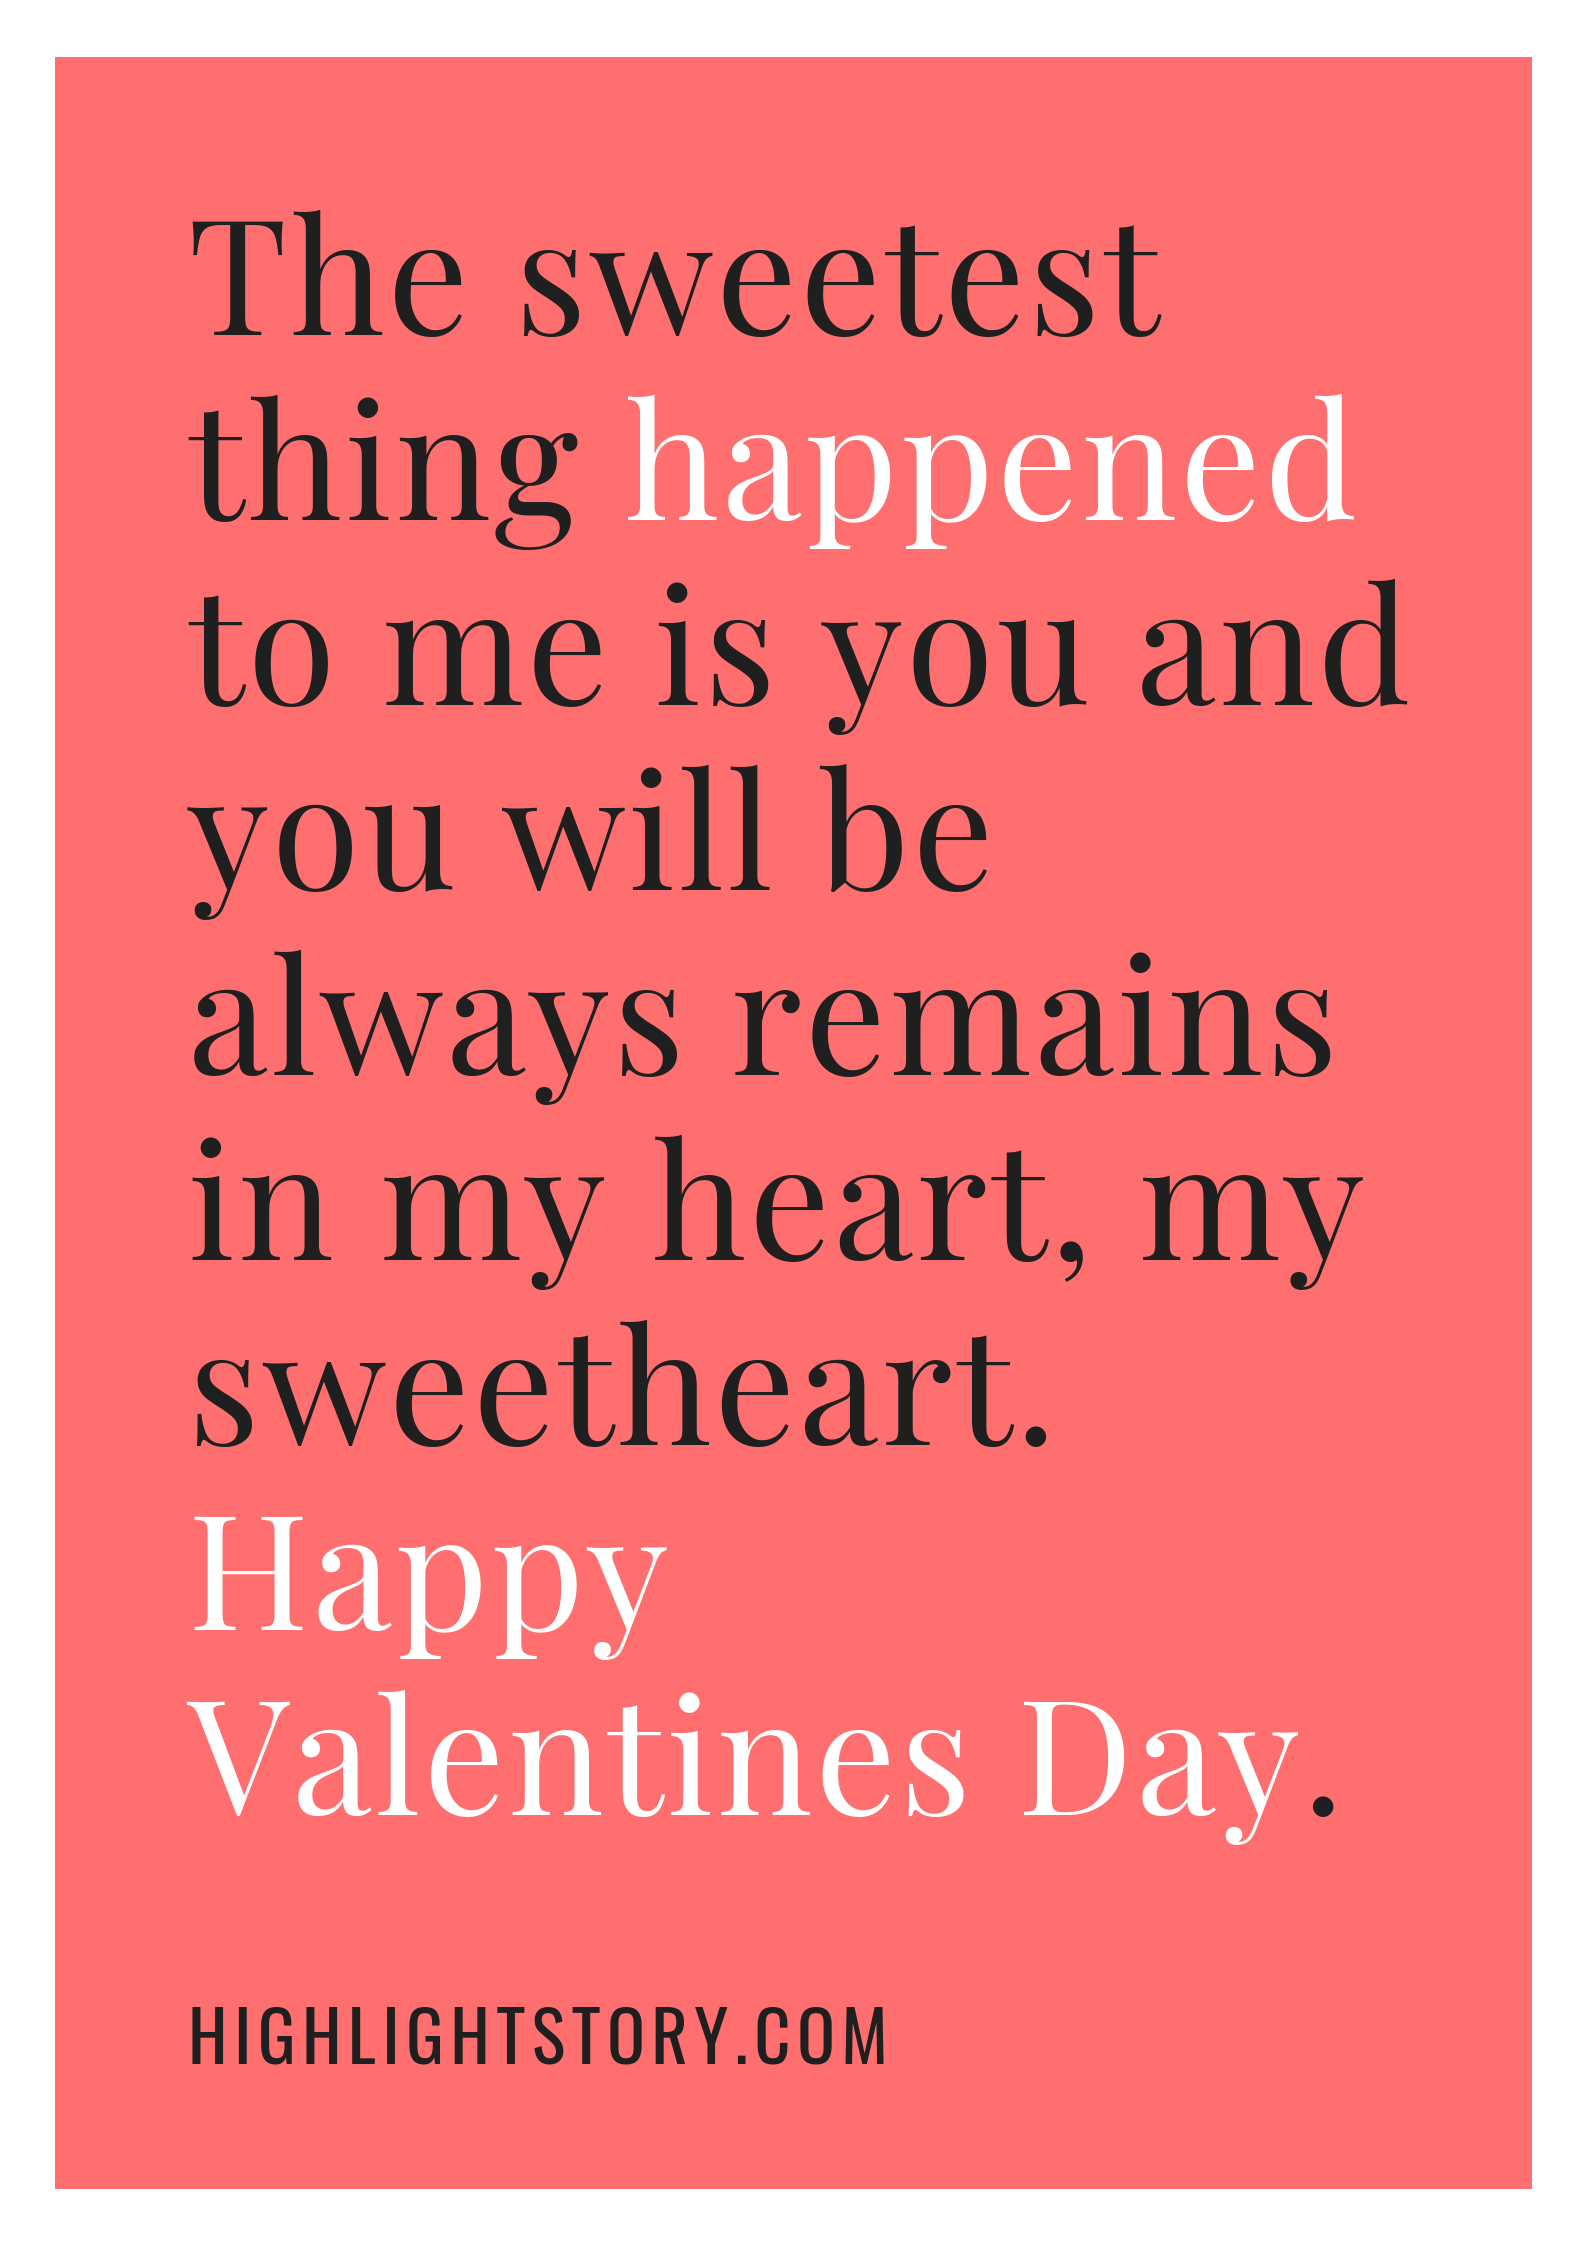 The sweetest thing happened to me is you and you will be always remains in my heart, my sweetheart. Happy Valentines Day.